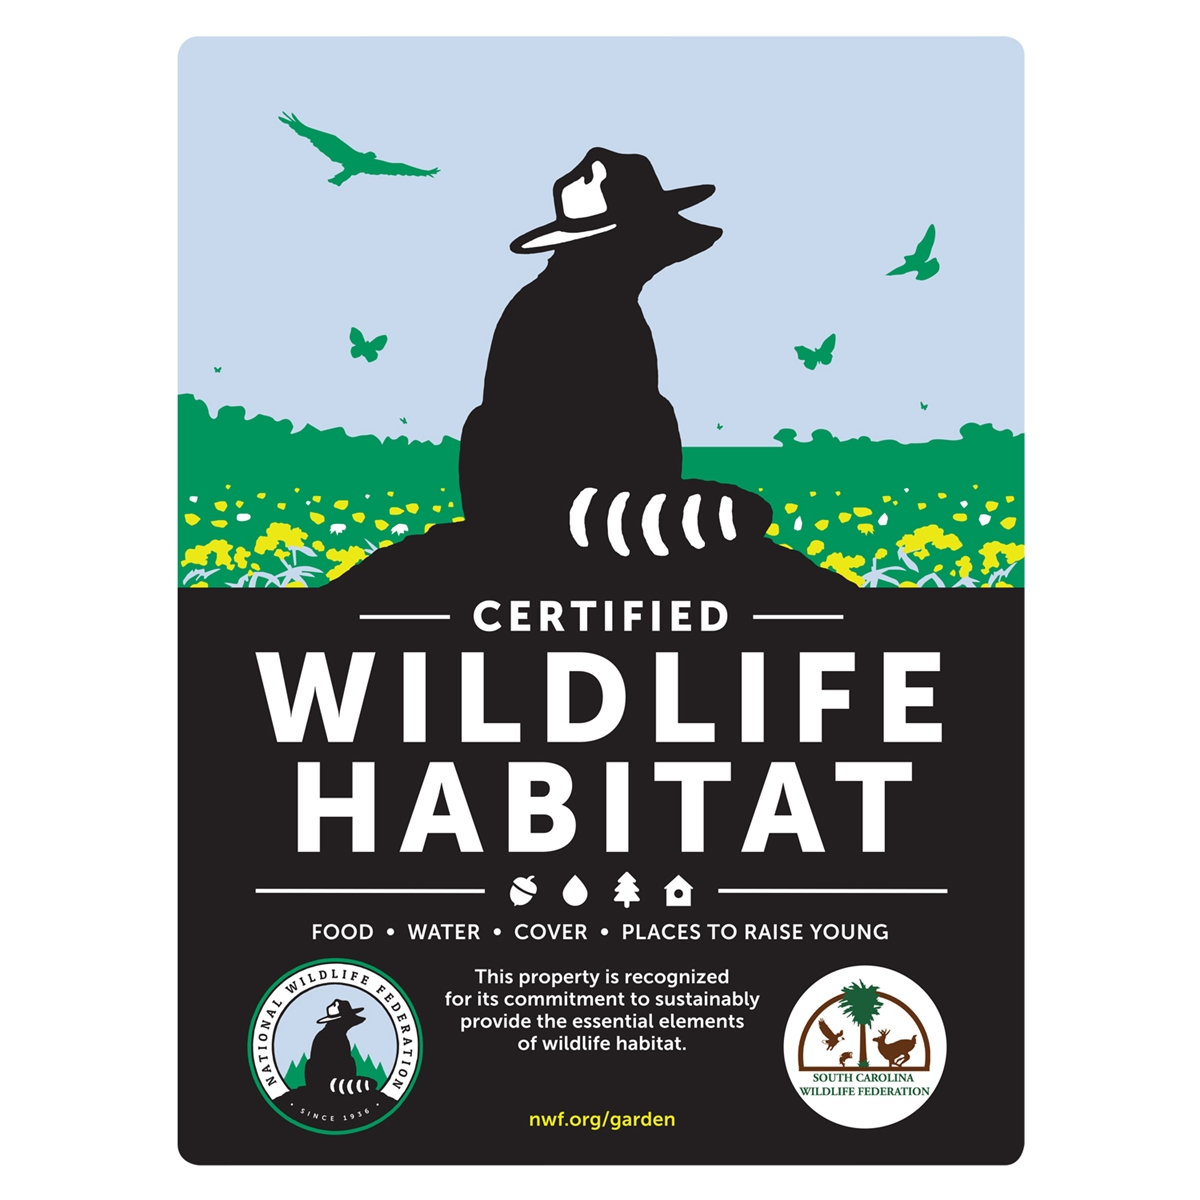 South Carolina Wildlife Federation Certified Wildlife Habitat Sign